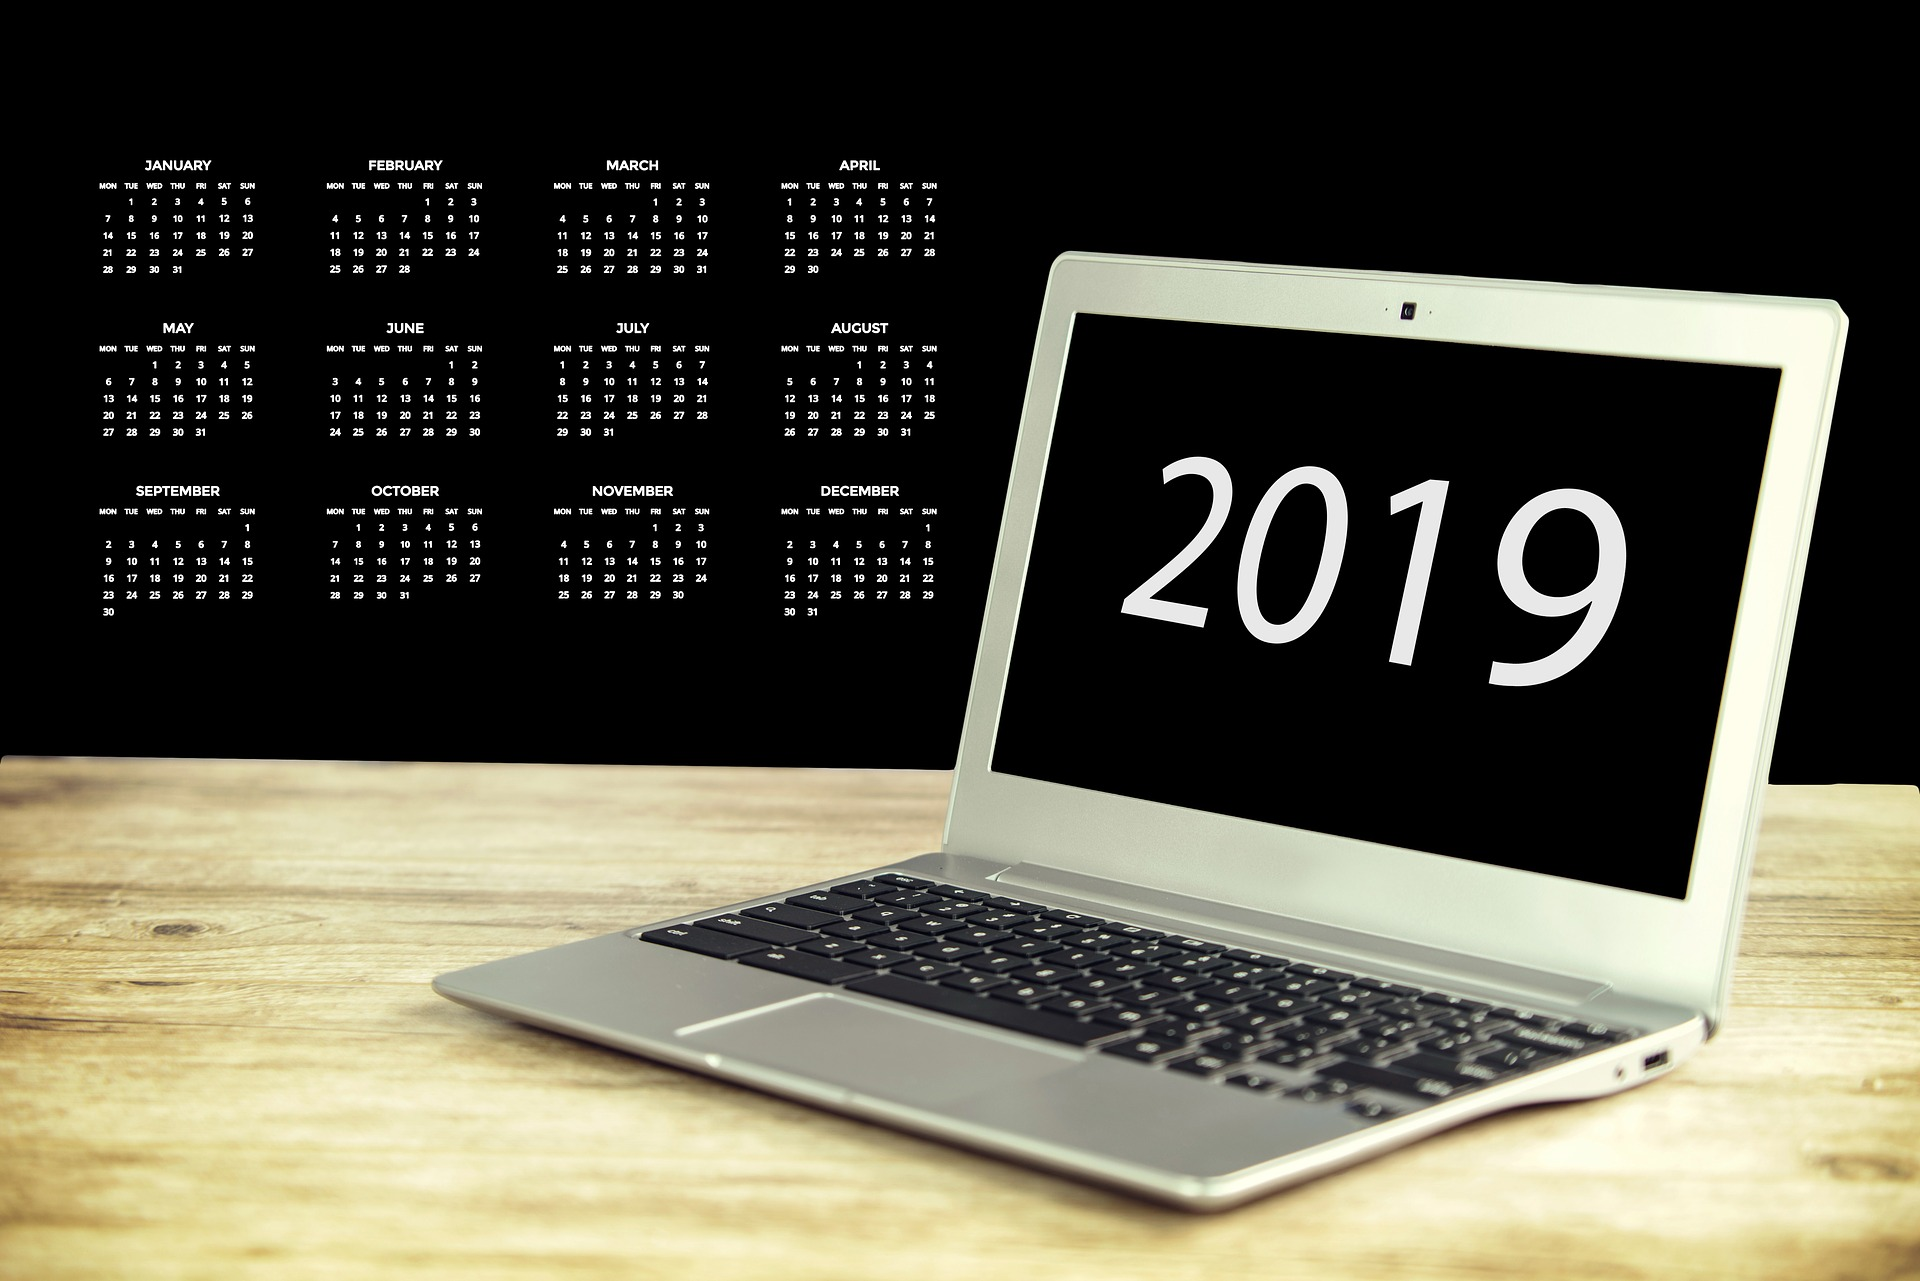 laptop with 2019 and months of the year in background